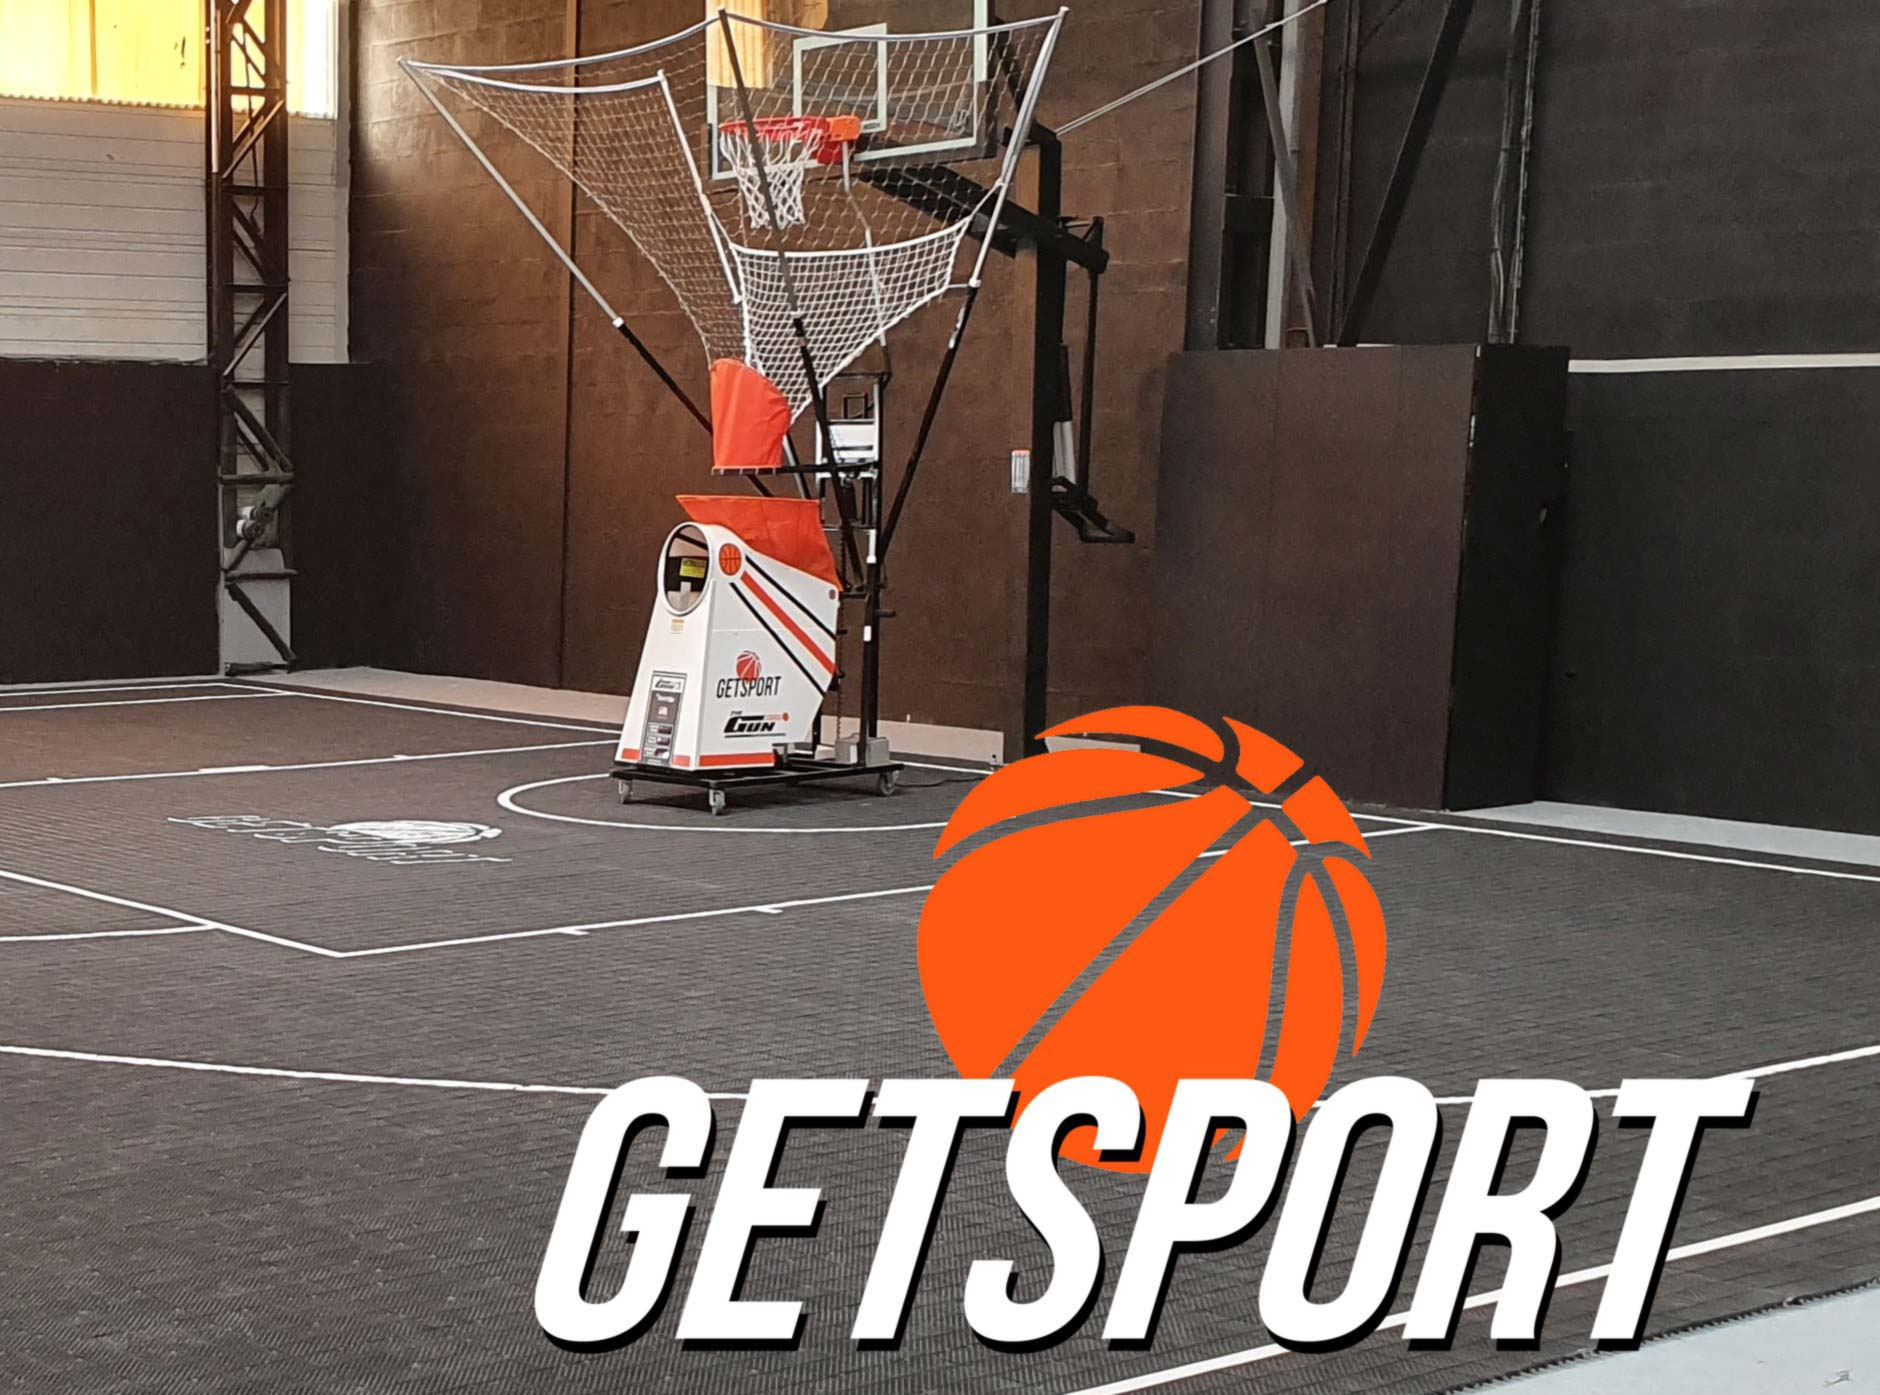 You are currently viewing Getsport